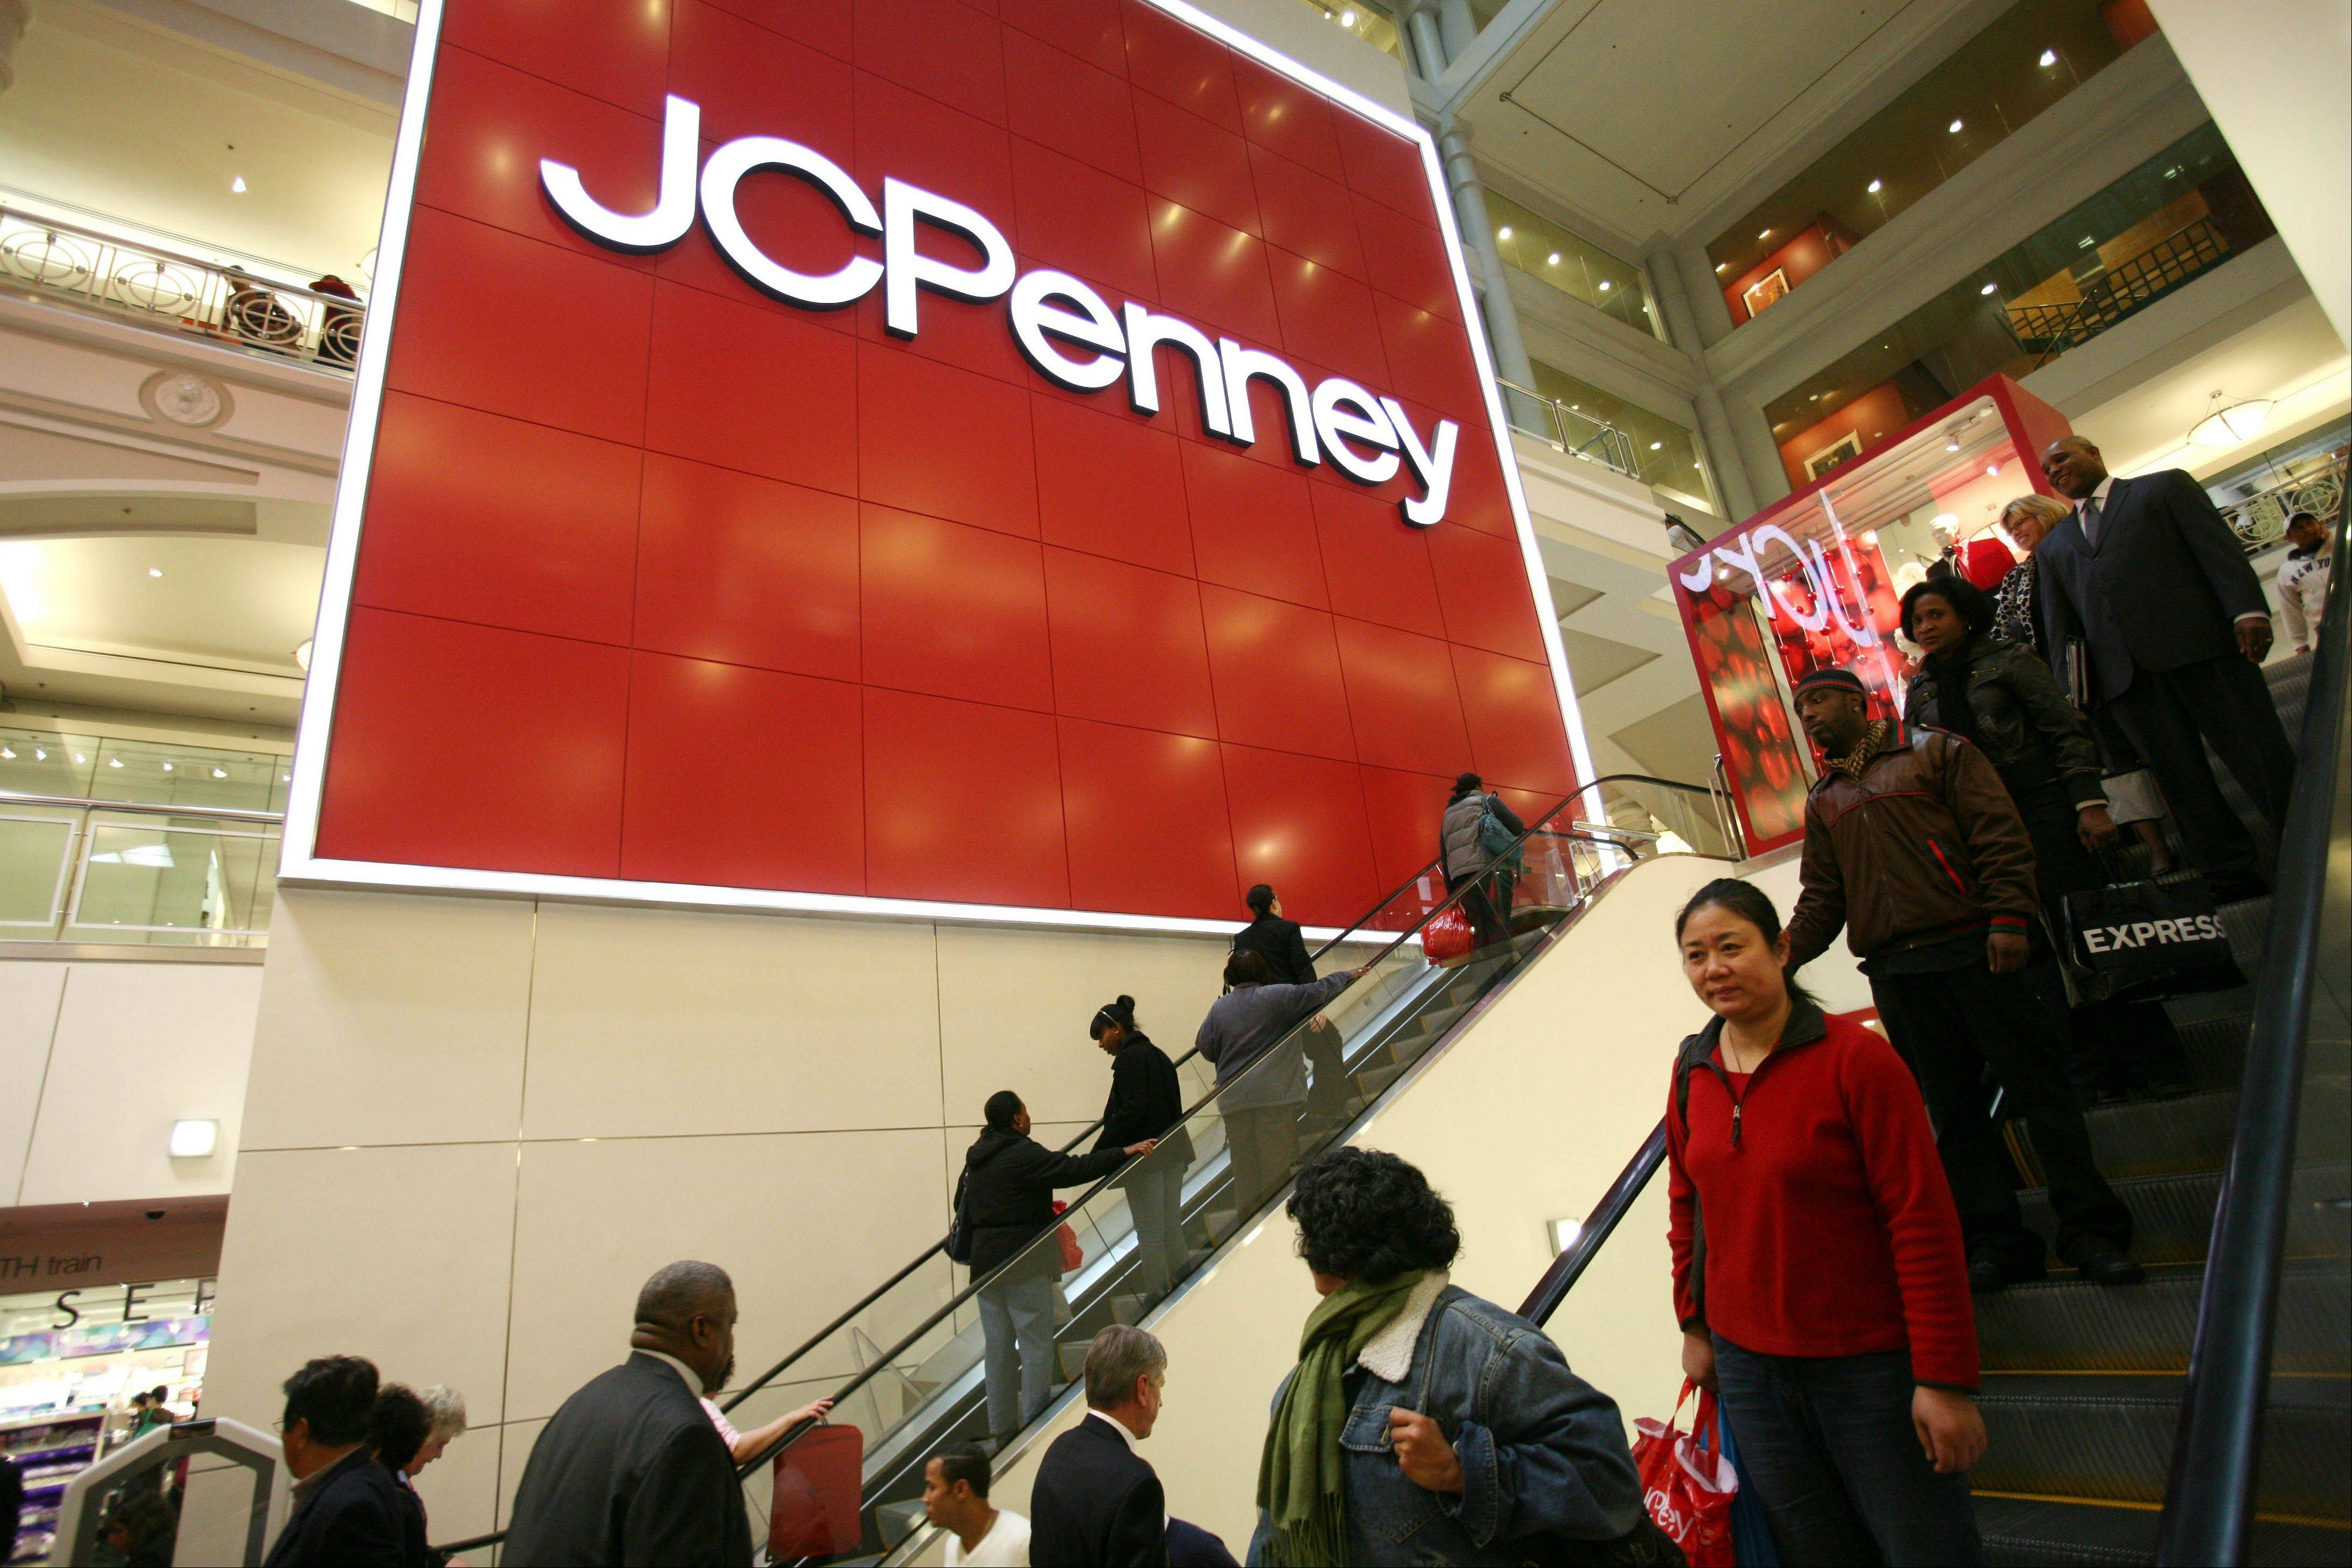 A new add from J.C. Penney says, �Recently J.C. Penney changed. Some changes you liked, and some you didn�t. But what matters with mistakes is what we learn. We learned a very simple thing, to listen to you.�